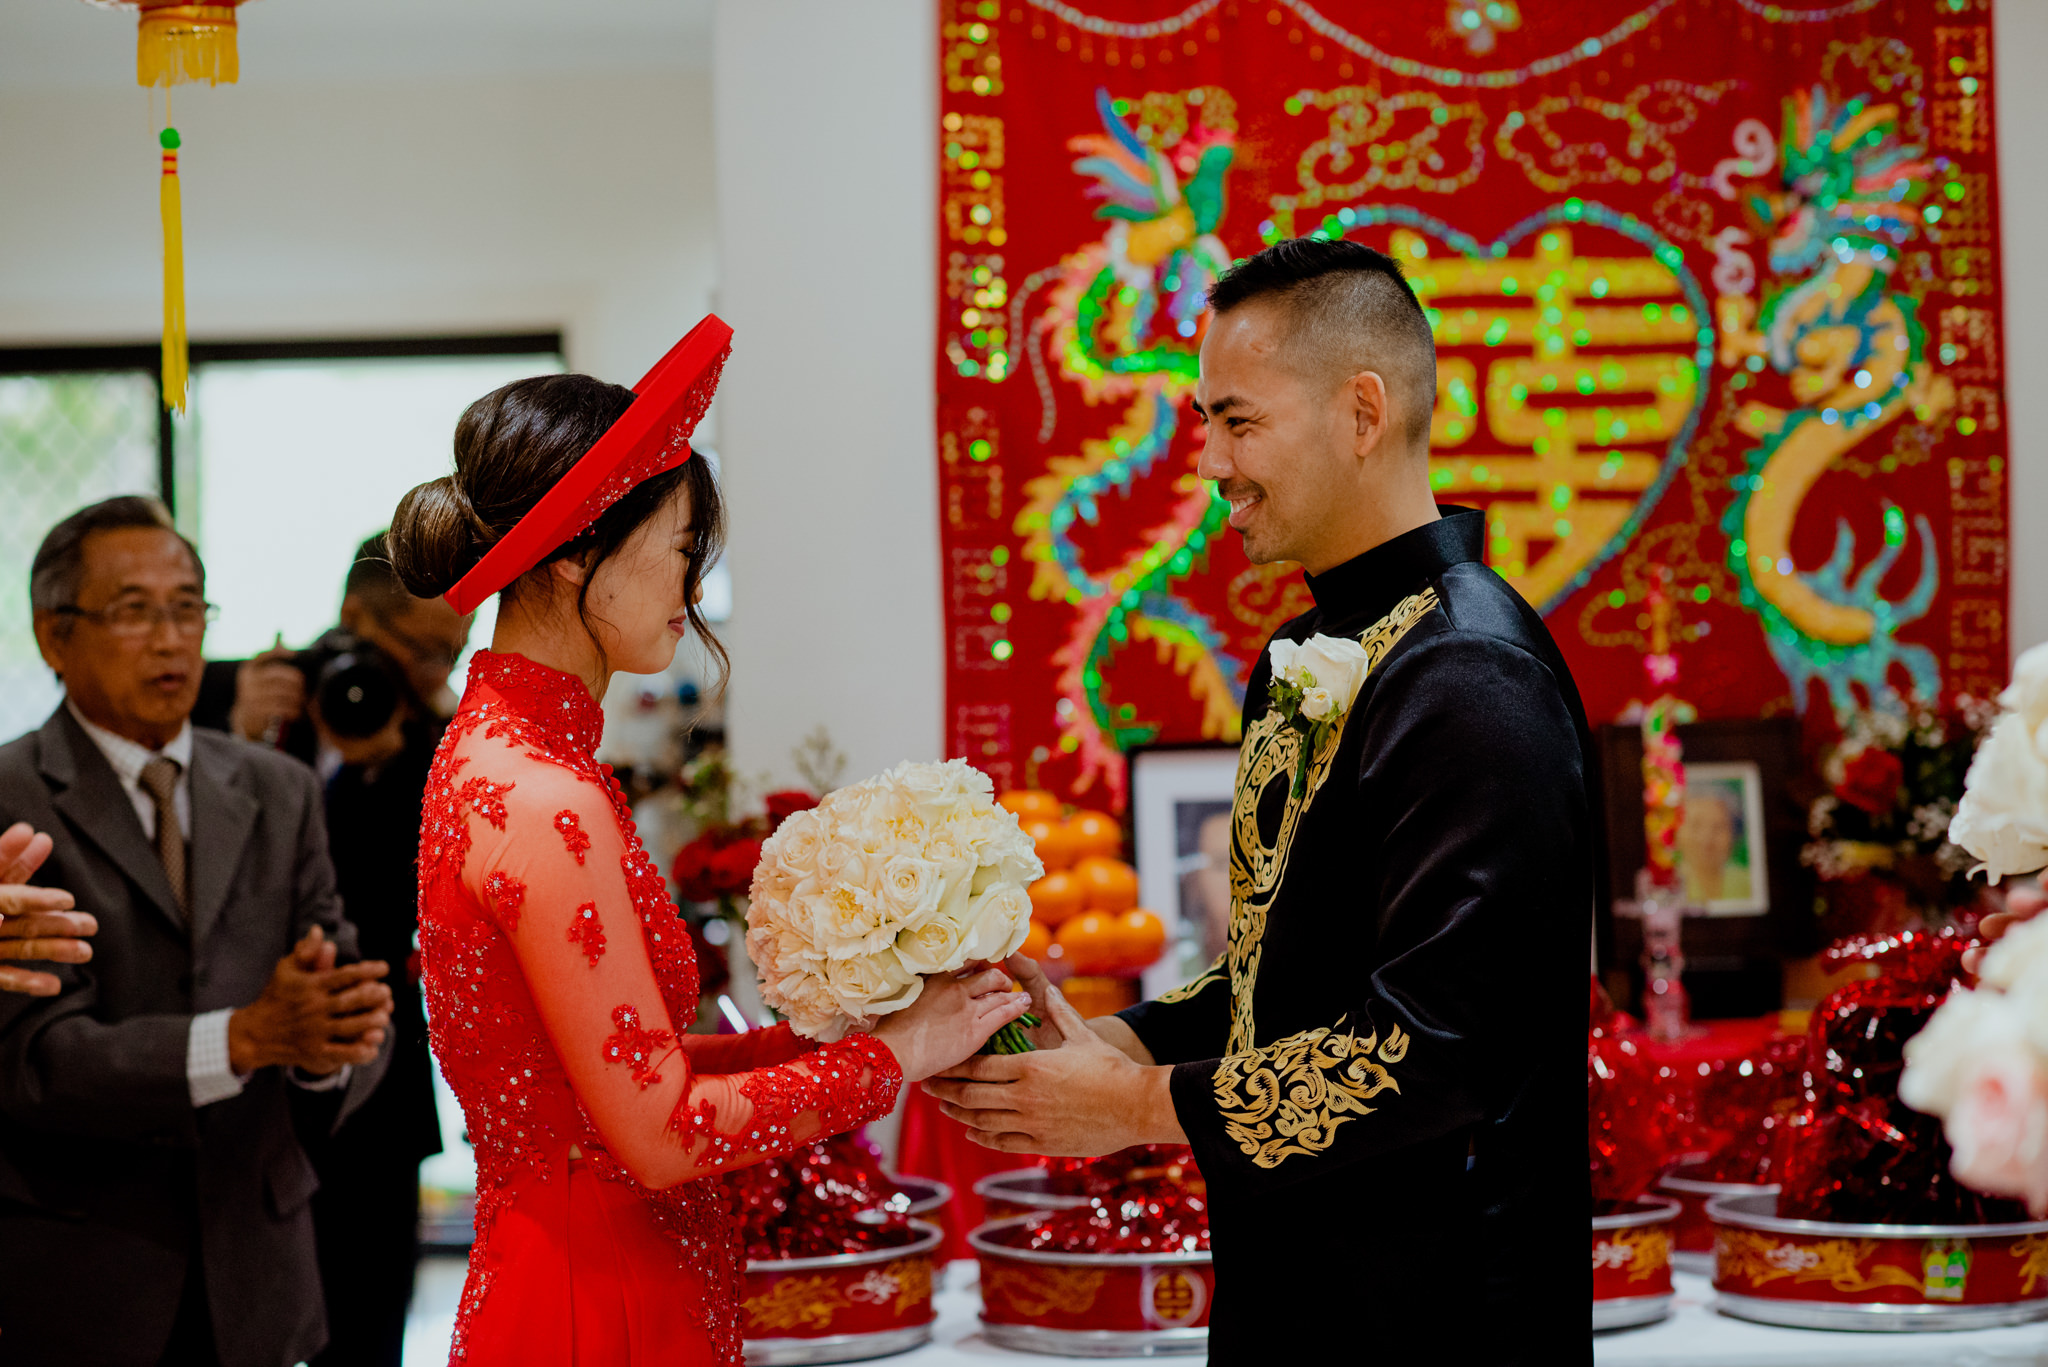 A Vietnamese bride and groom meet together and smile wearing traditional Vietnamese wedding clothes